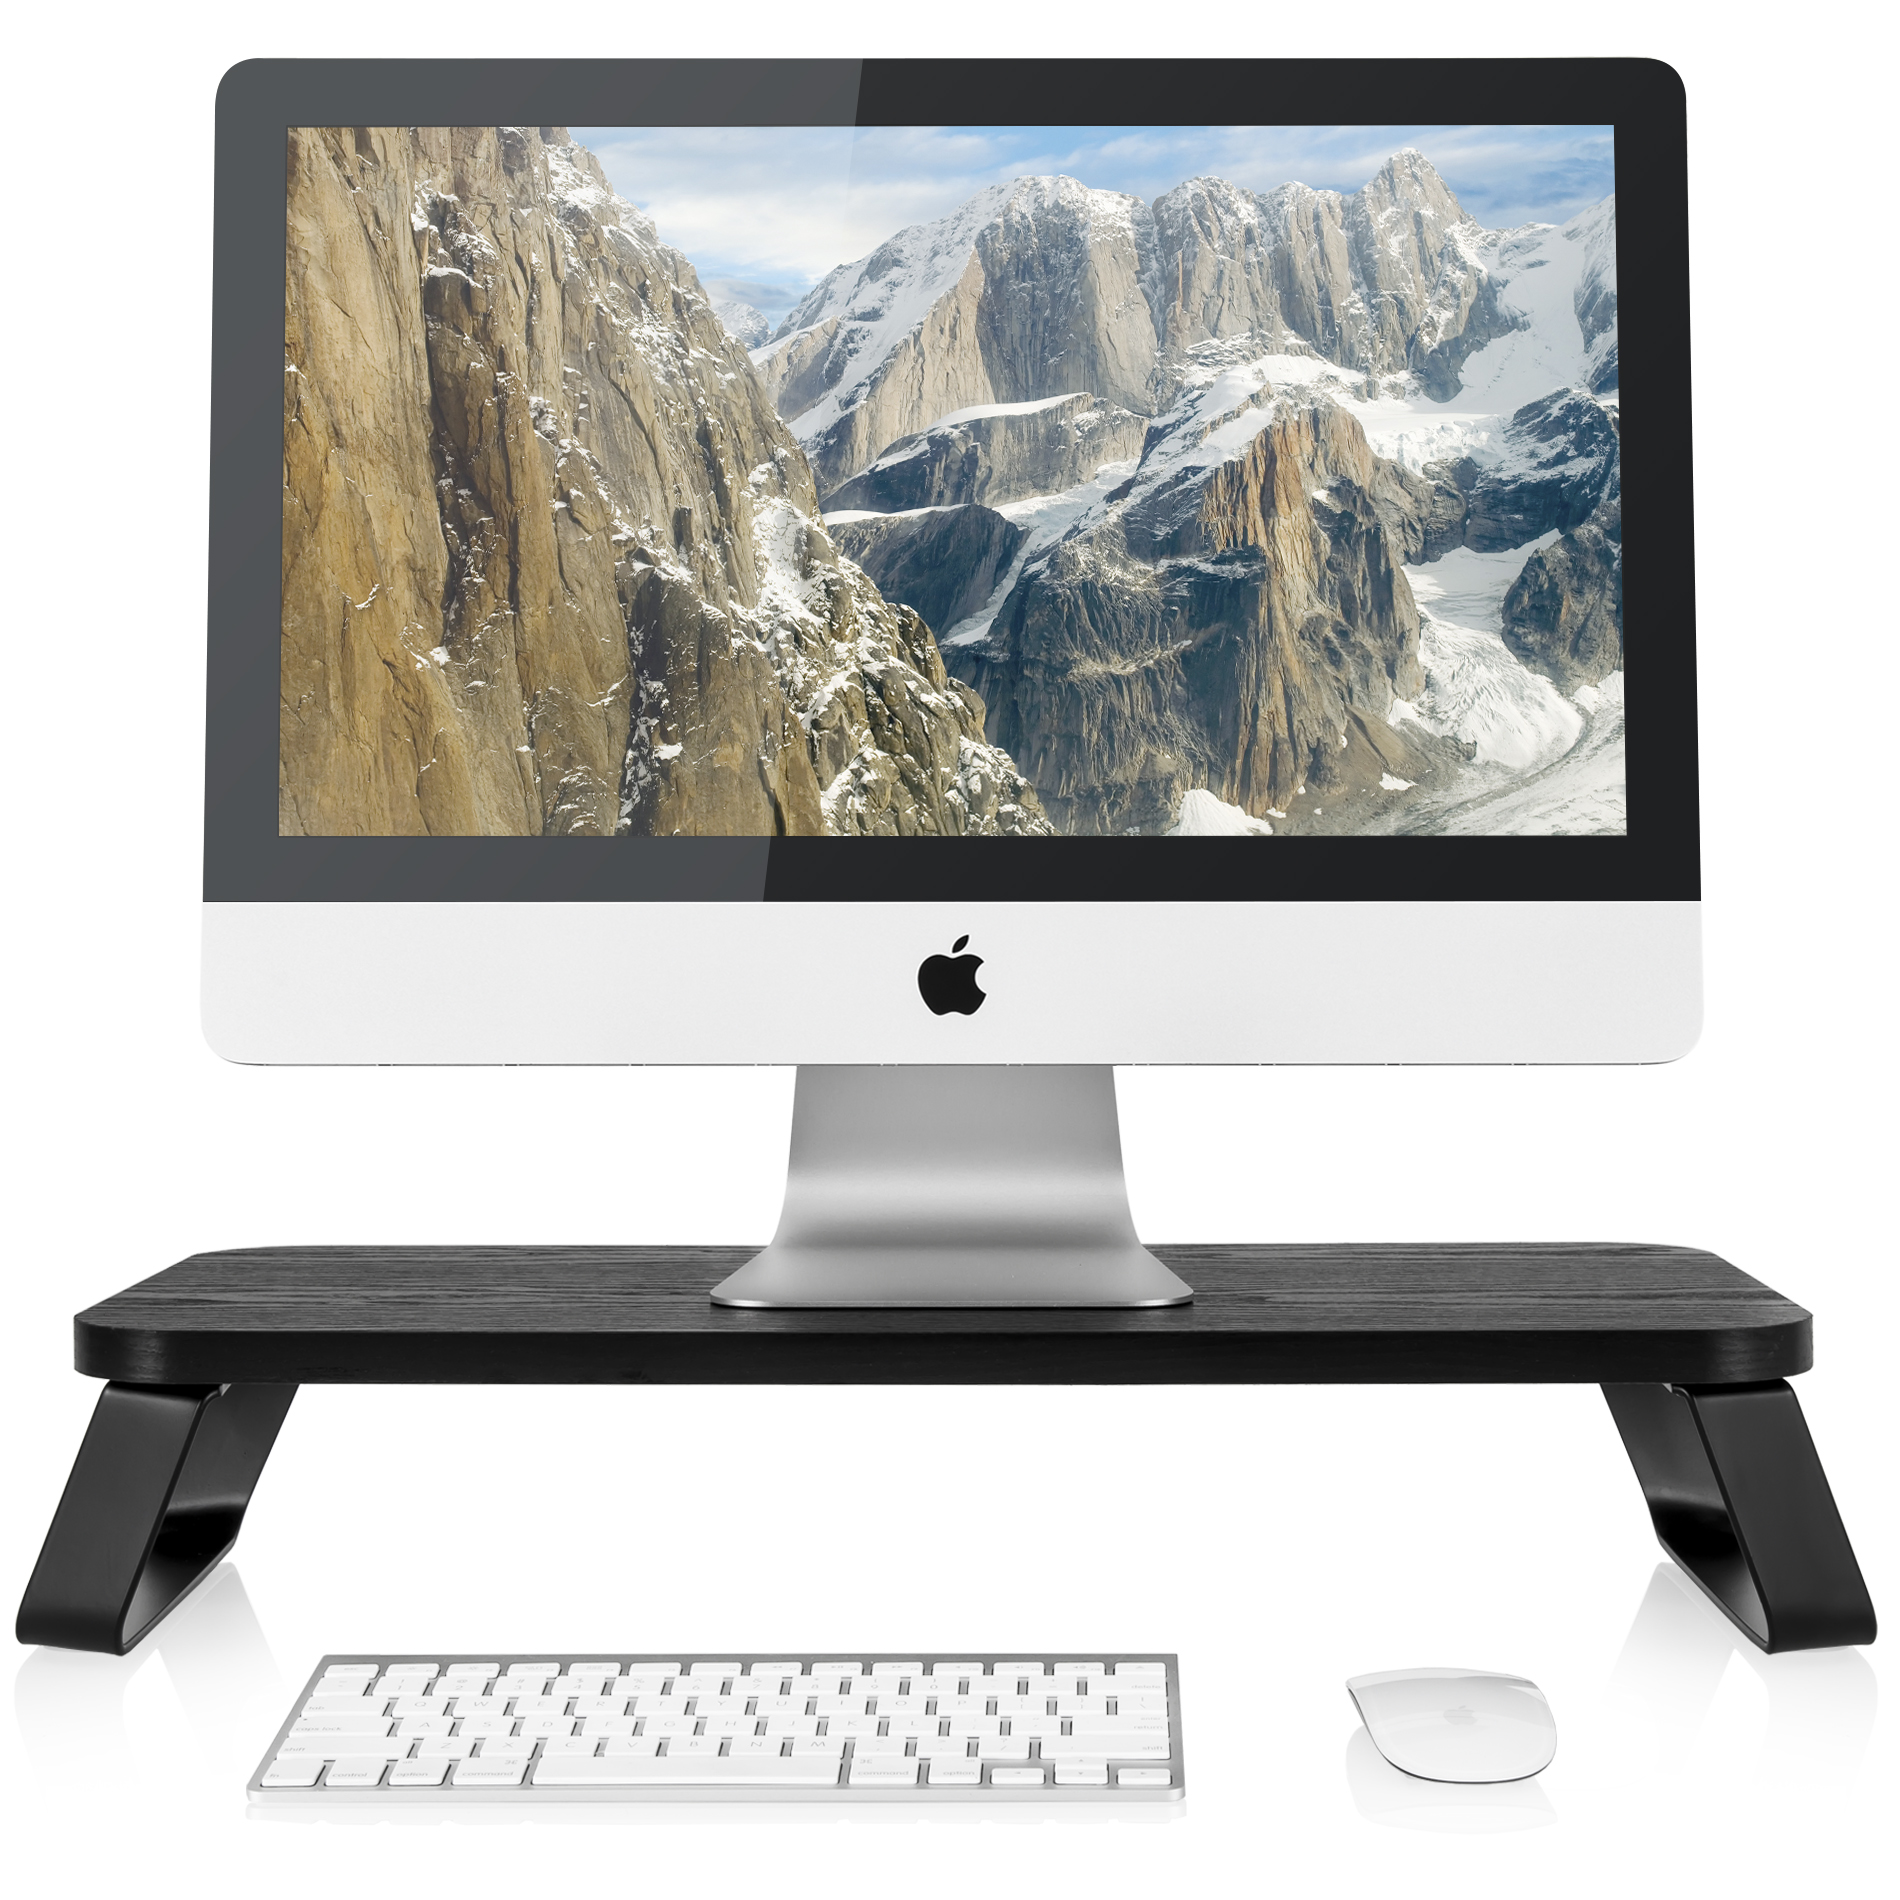 FITUEYES Computer Monitor Riser Stand with keybroad storage space DT106009WB